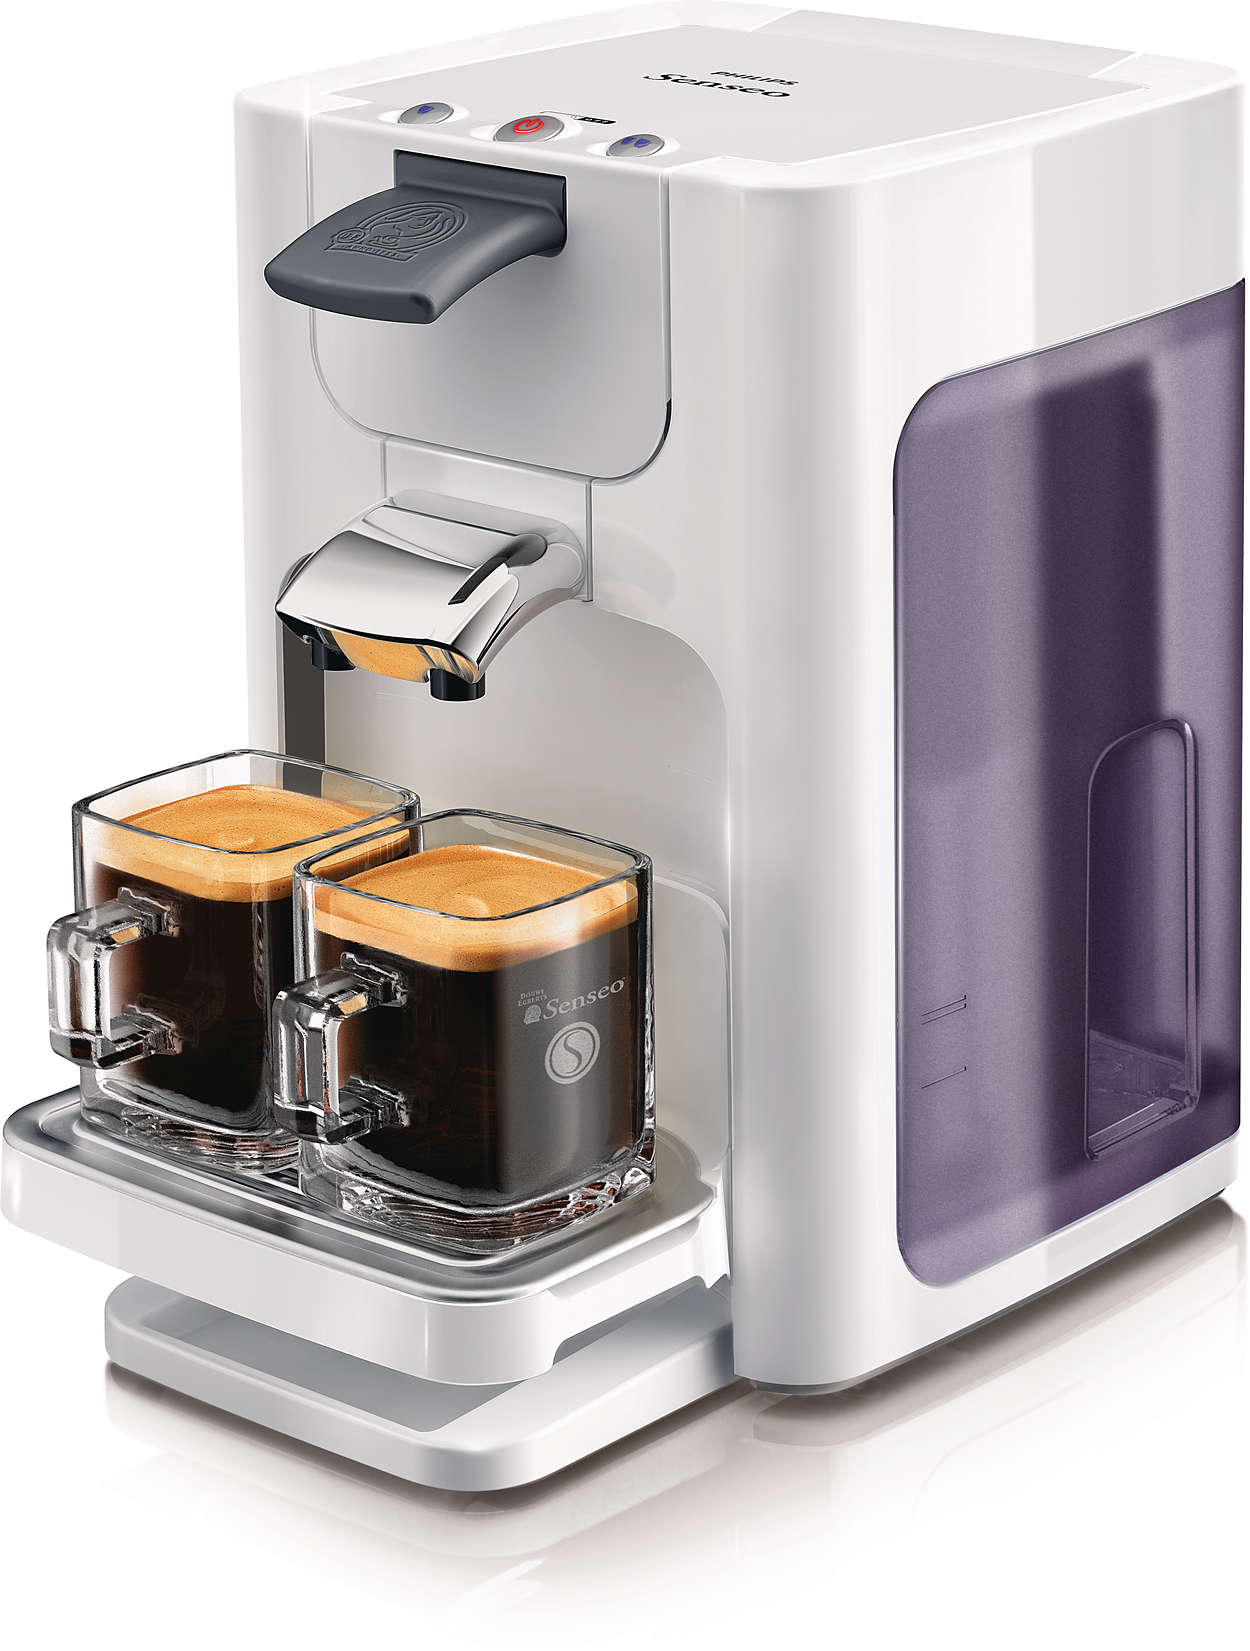 Quadrante machine caf dosettes hd7860 18 senseo - Nouvelle machine a cafe ...